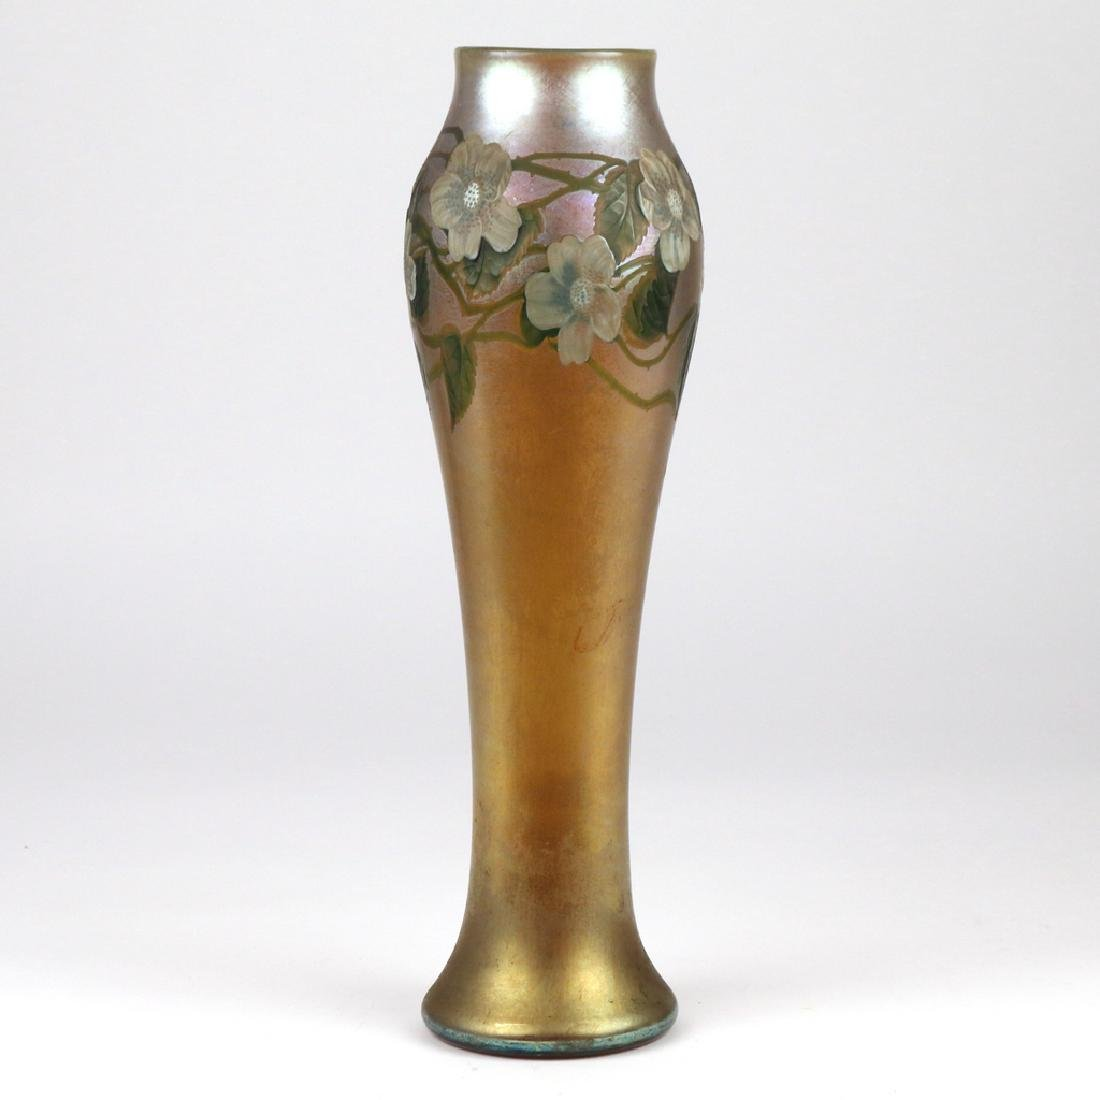 LOUIS COMFORT TIFFANY FAVRILE PAPERWEIGHT VASE - 2